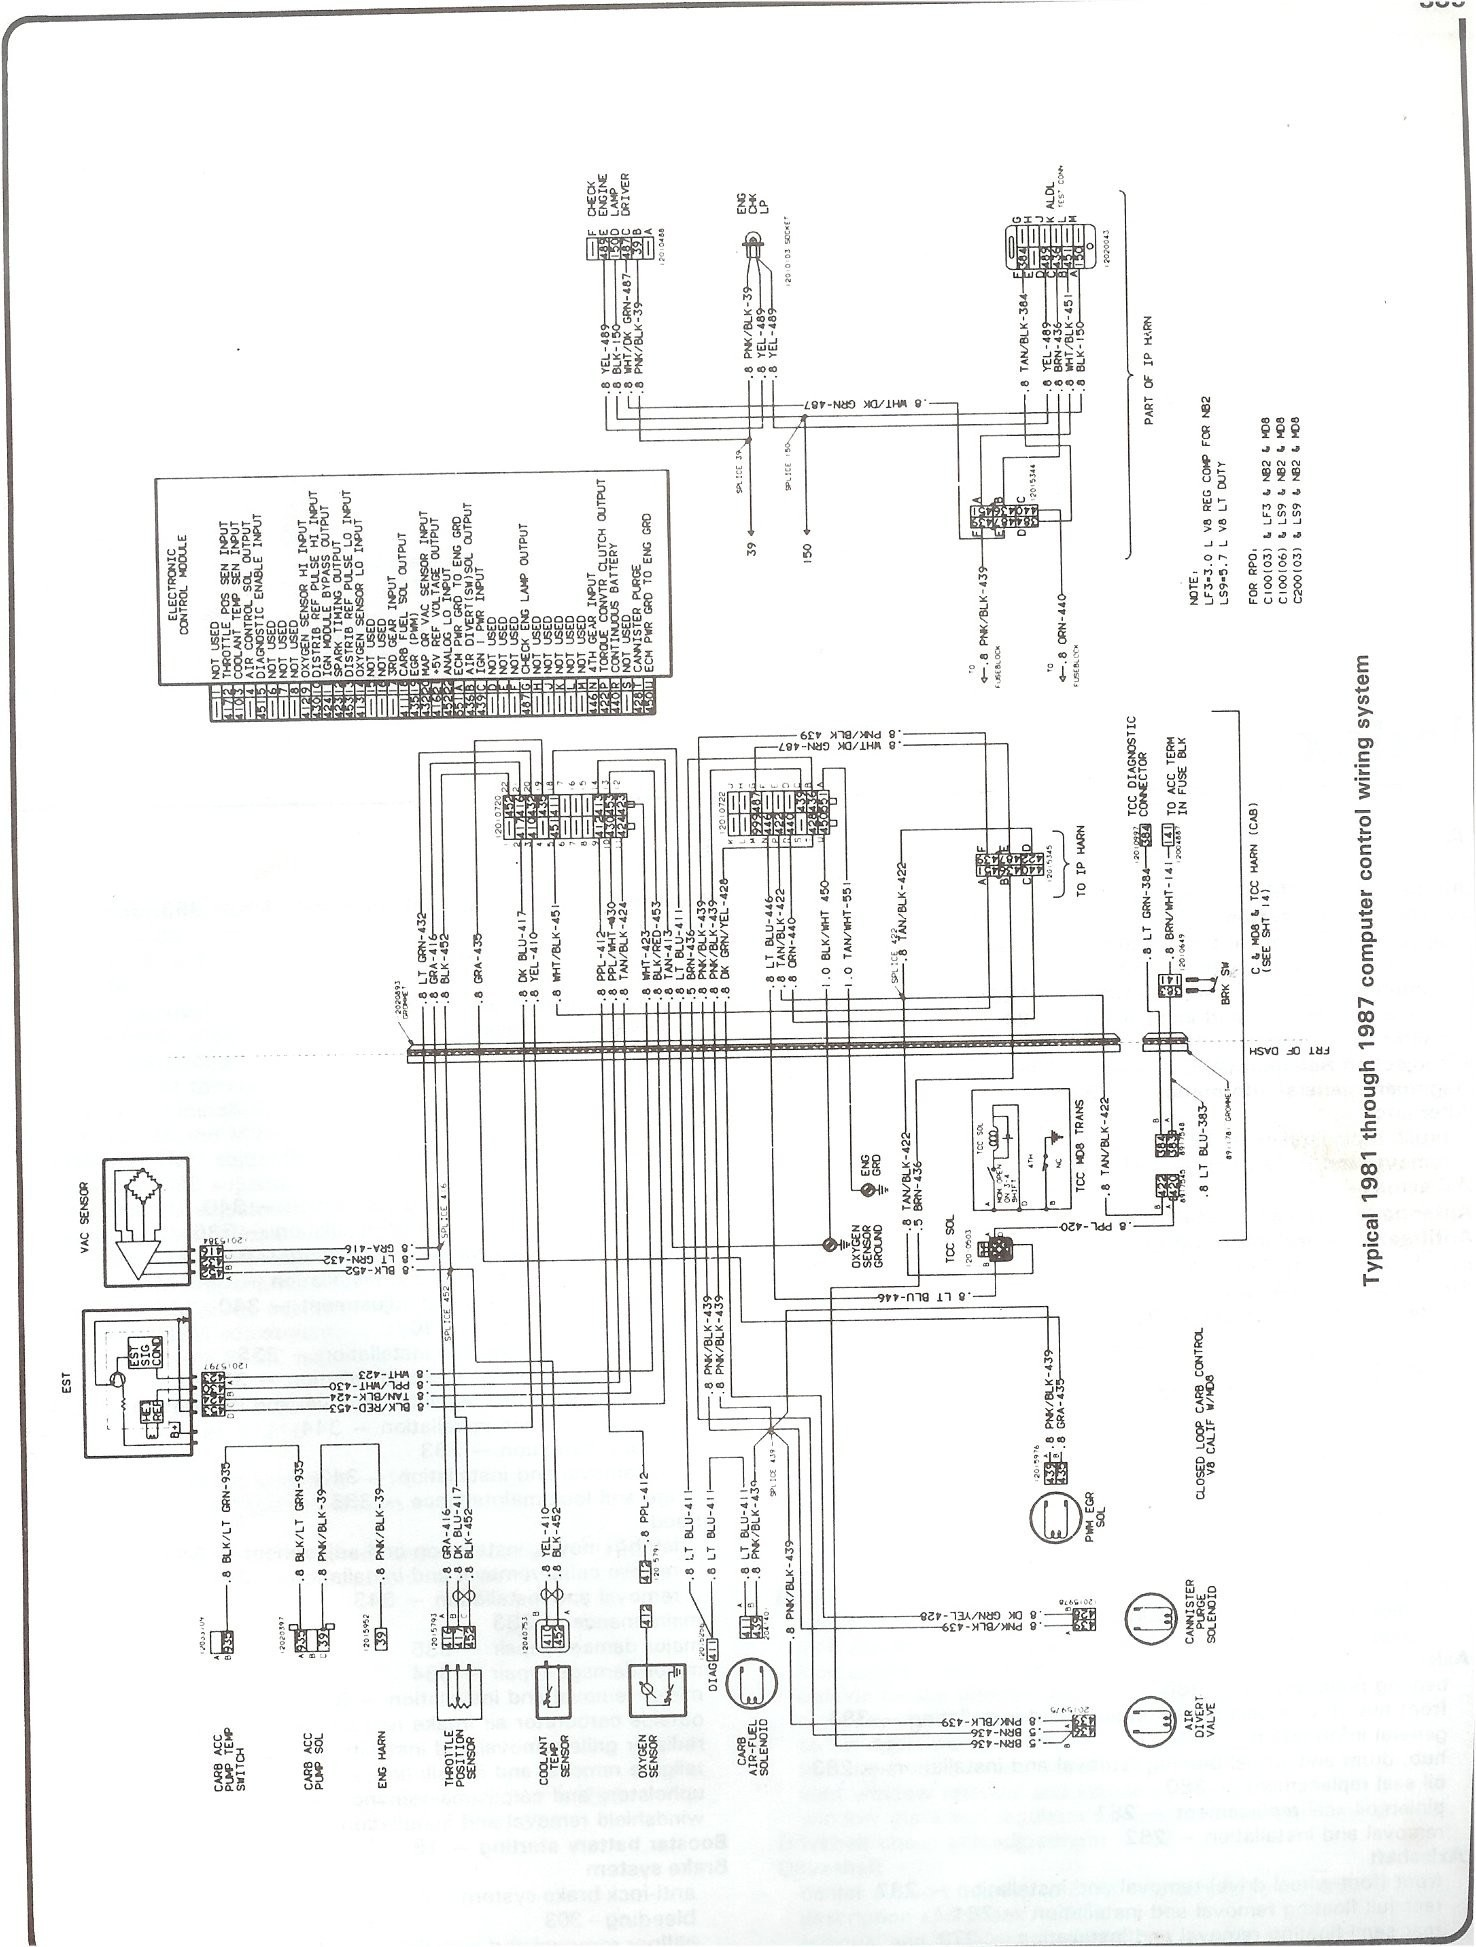 2003 Chevy Impala Engine Diagram B4cdc 73 Gmc Wiring Harness Of 2003 Chevy Impala Engine Diagram Chevrolet Engine Diagrams Wiring Diagram Options